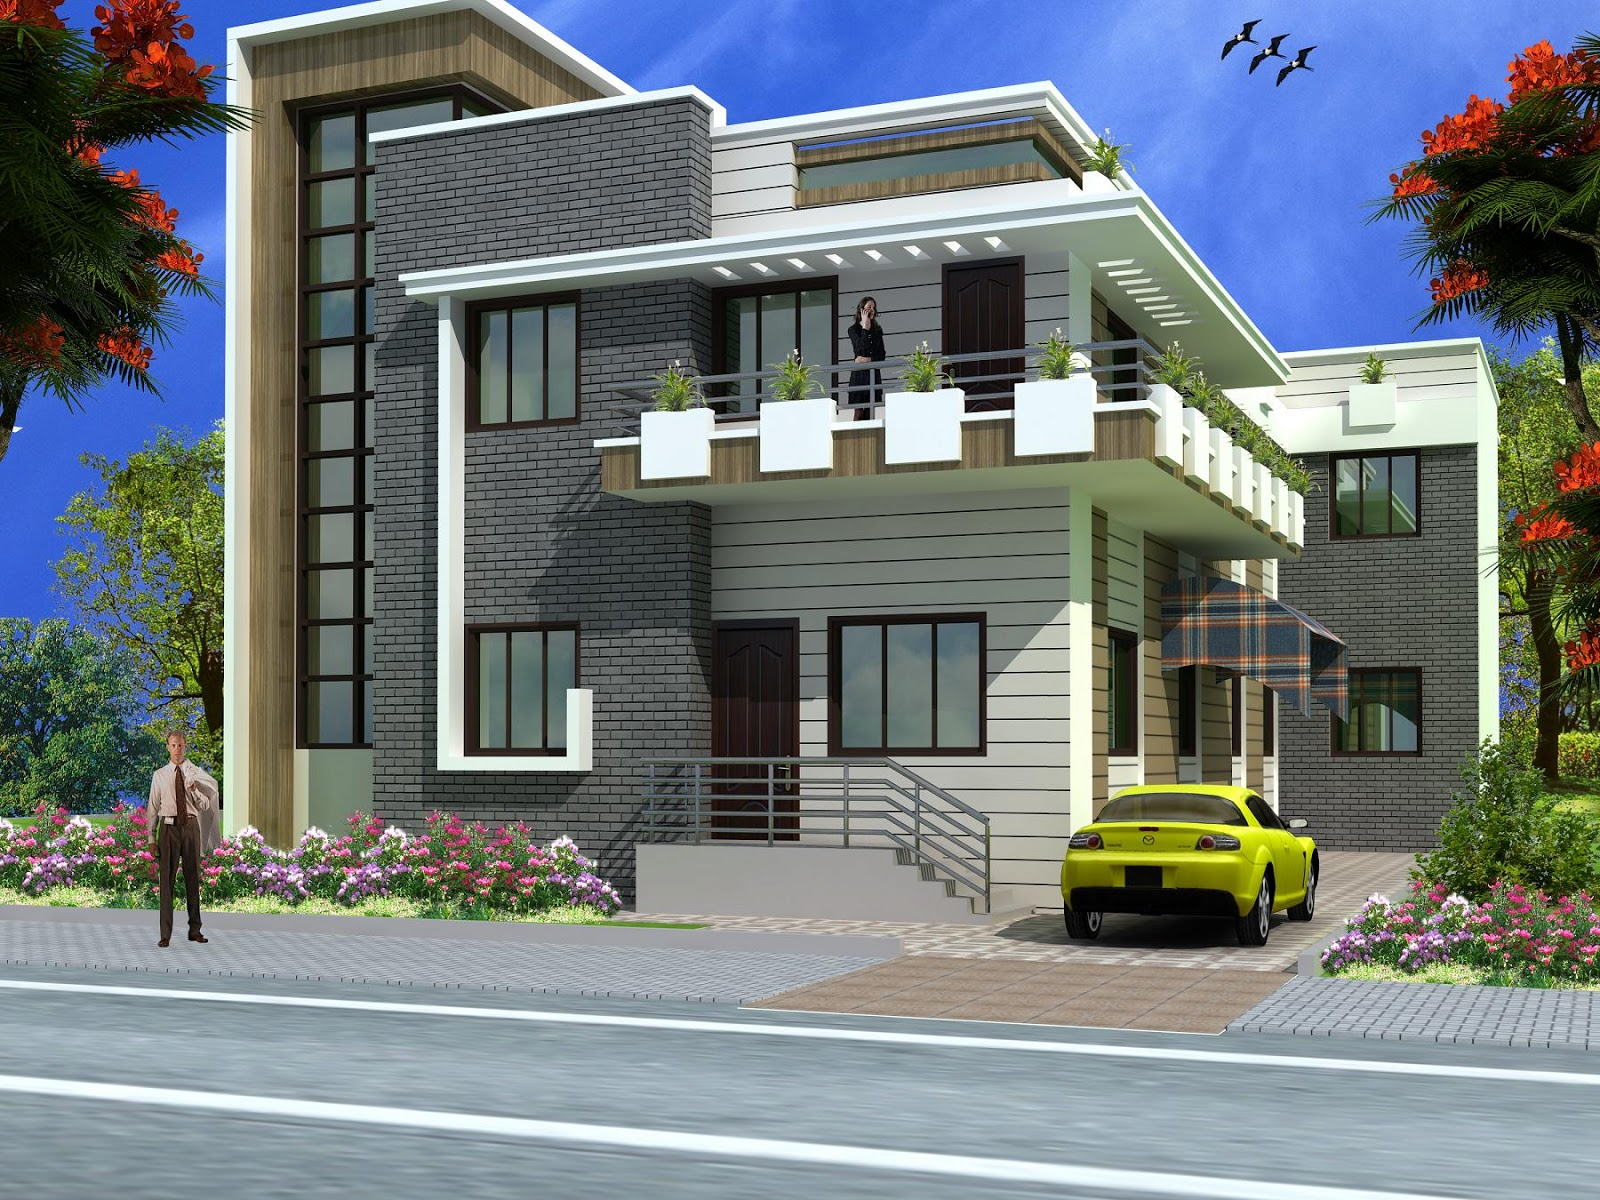 D Front Elevation Of House : Indian houses front elevation designs home design and style